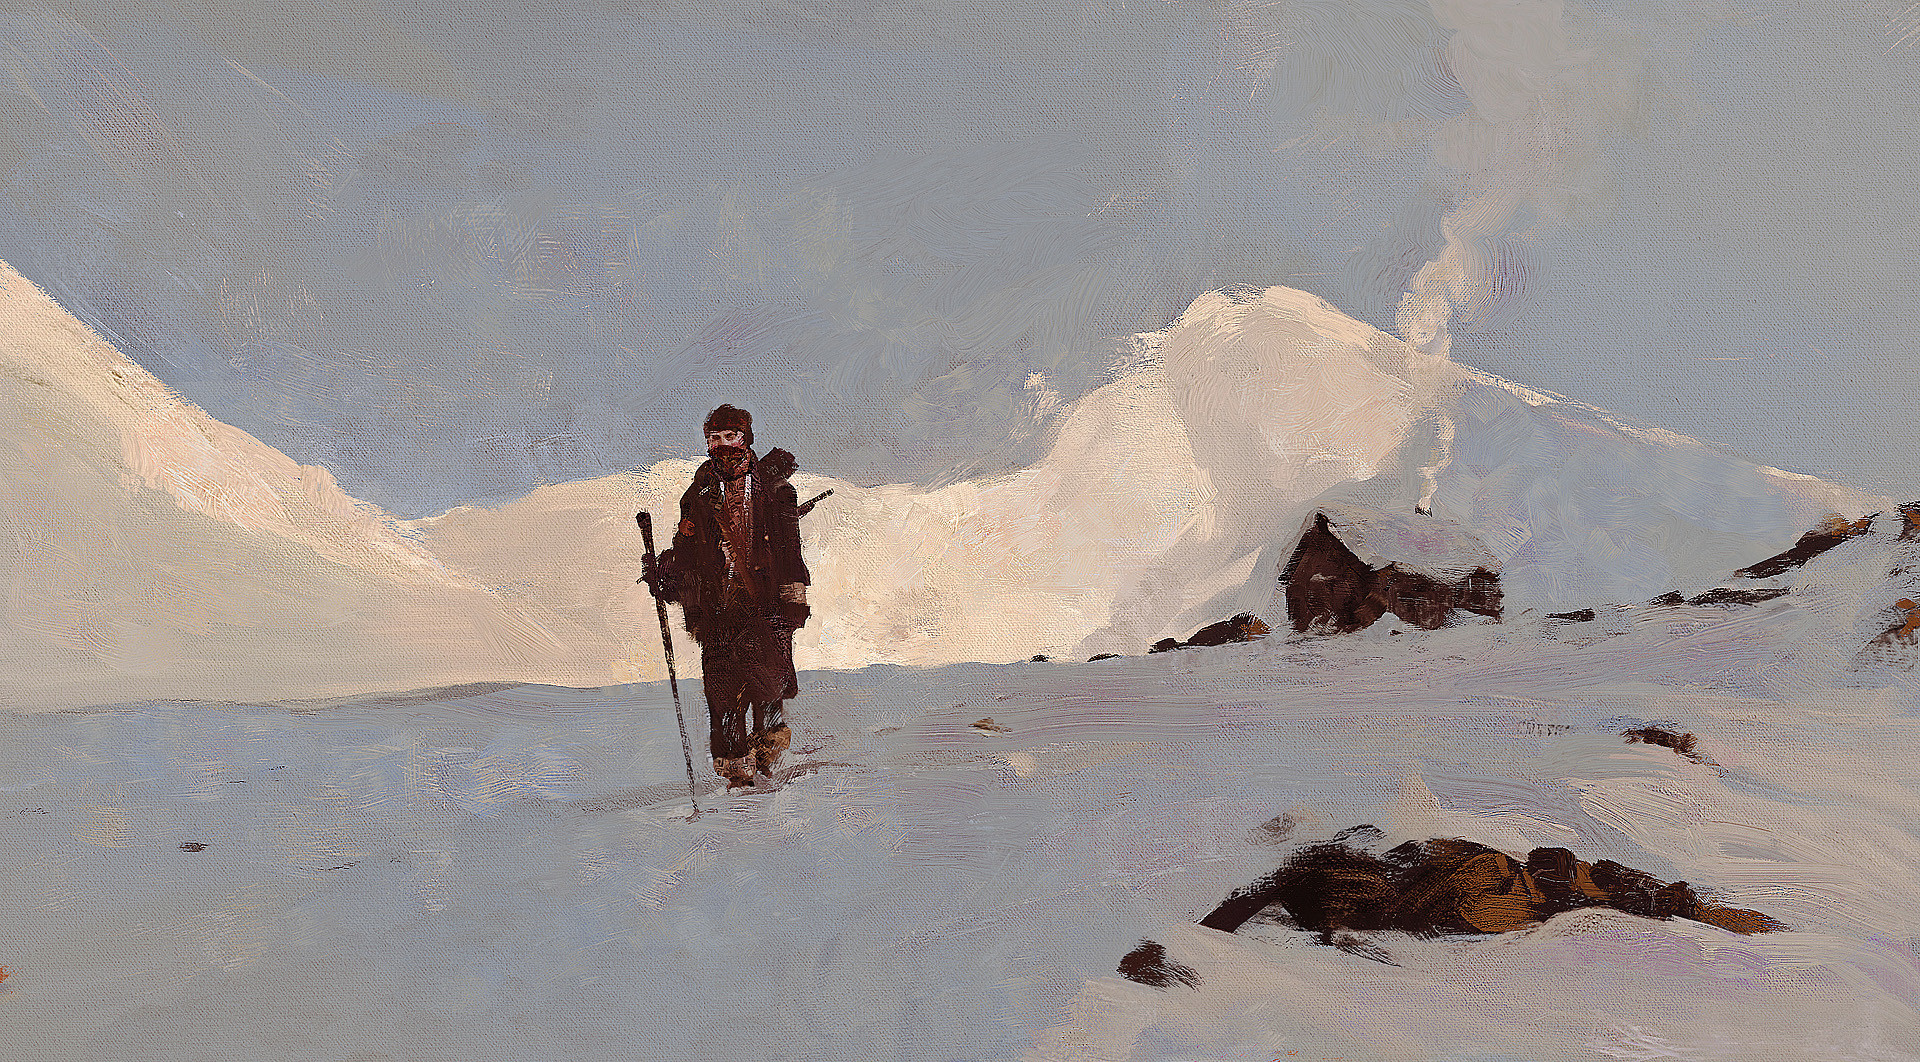 Greg rutkowski winter journey 1920 2